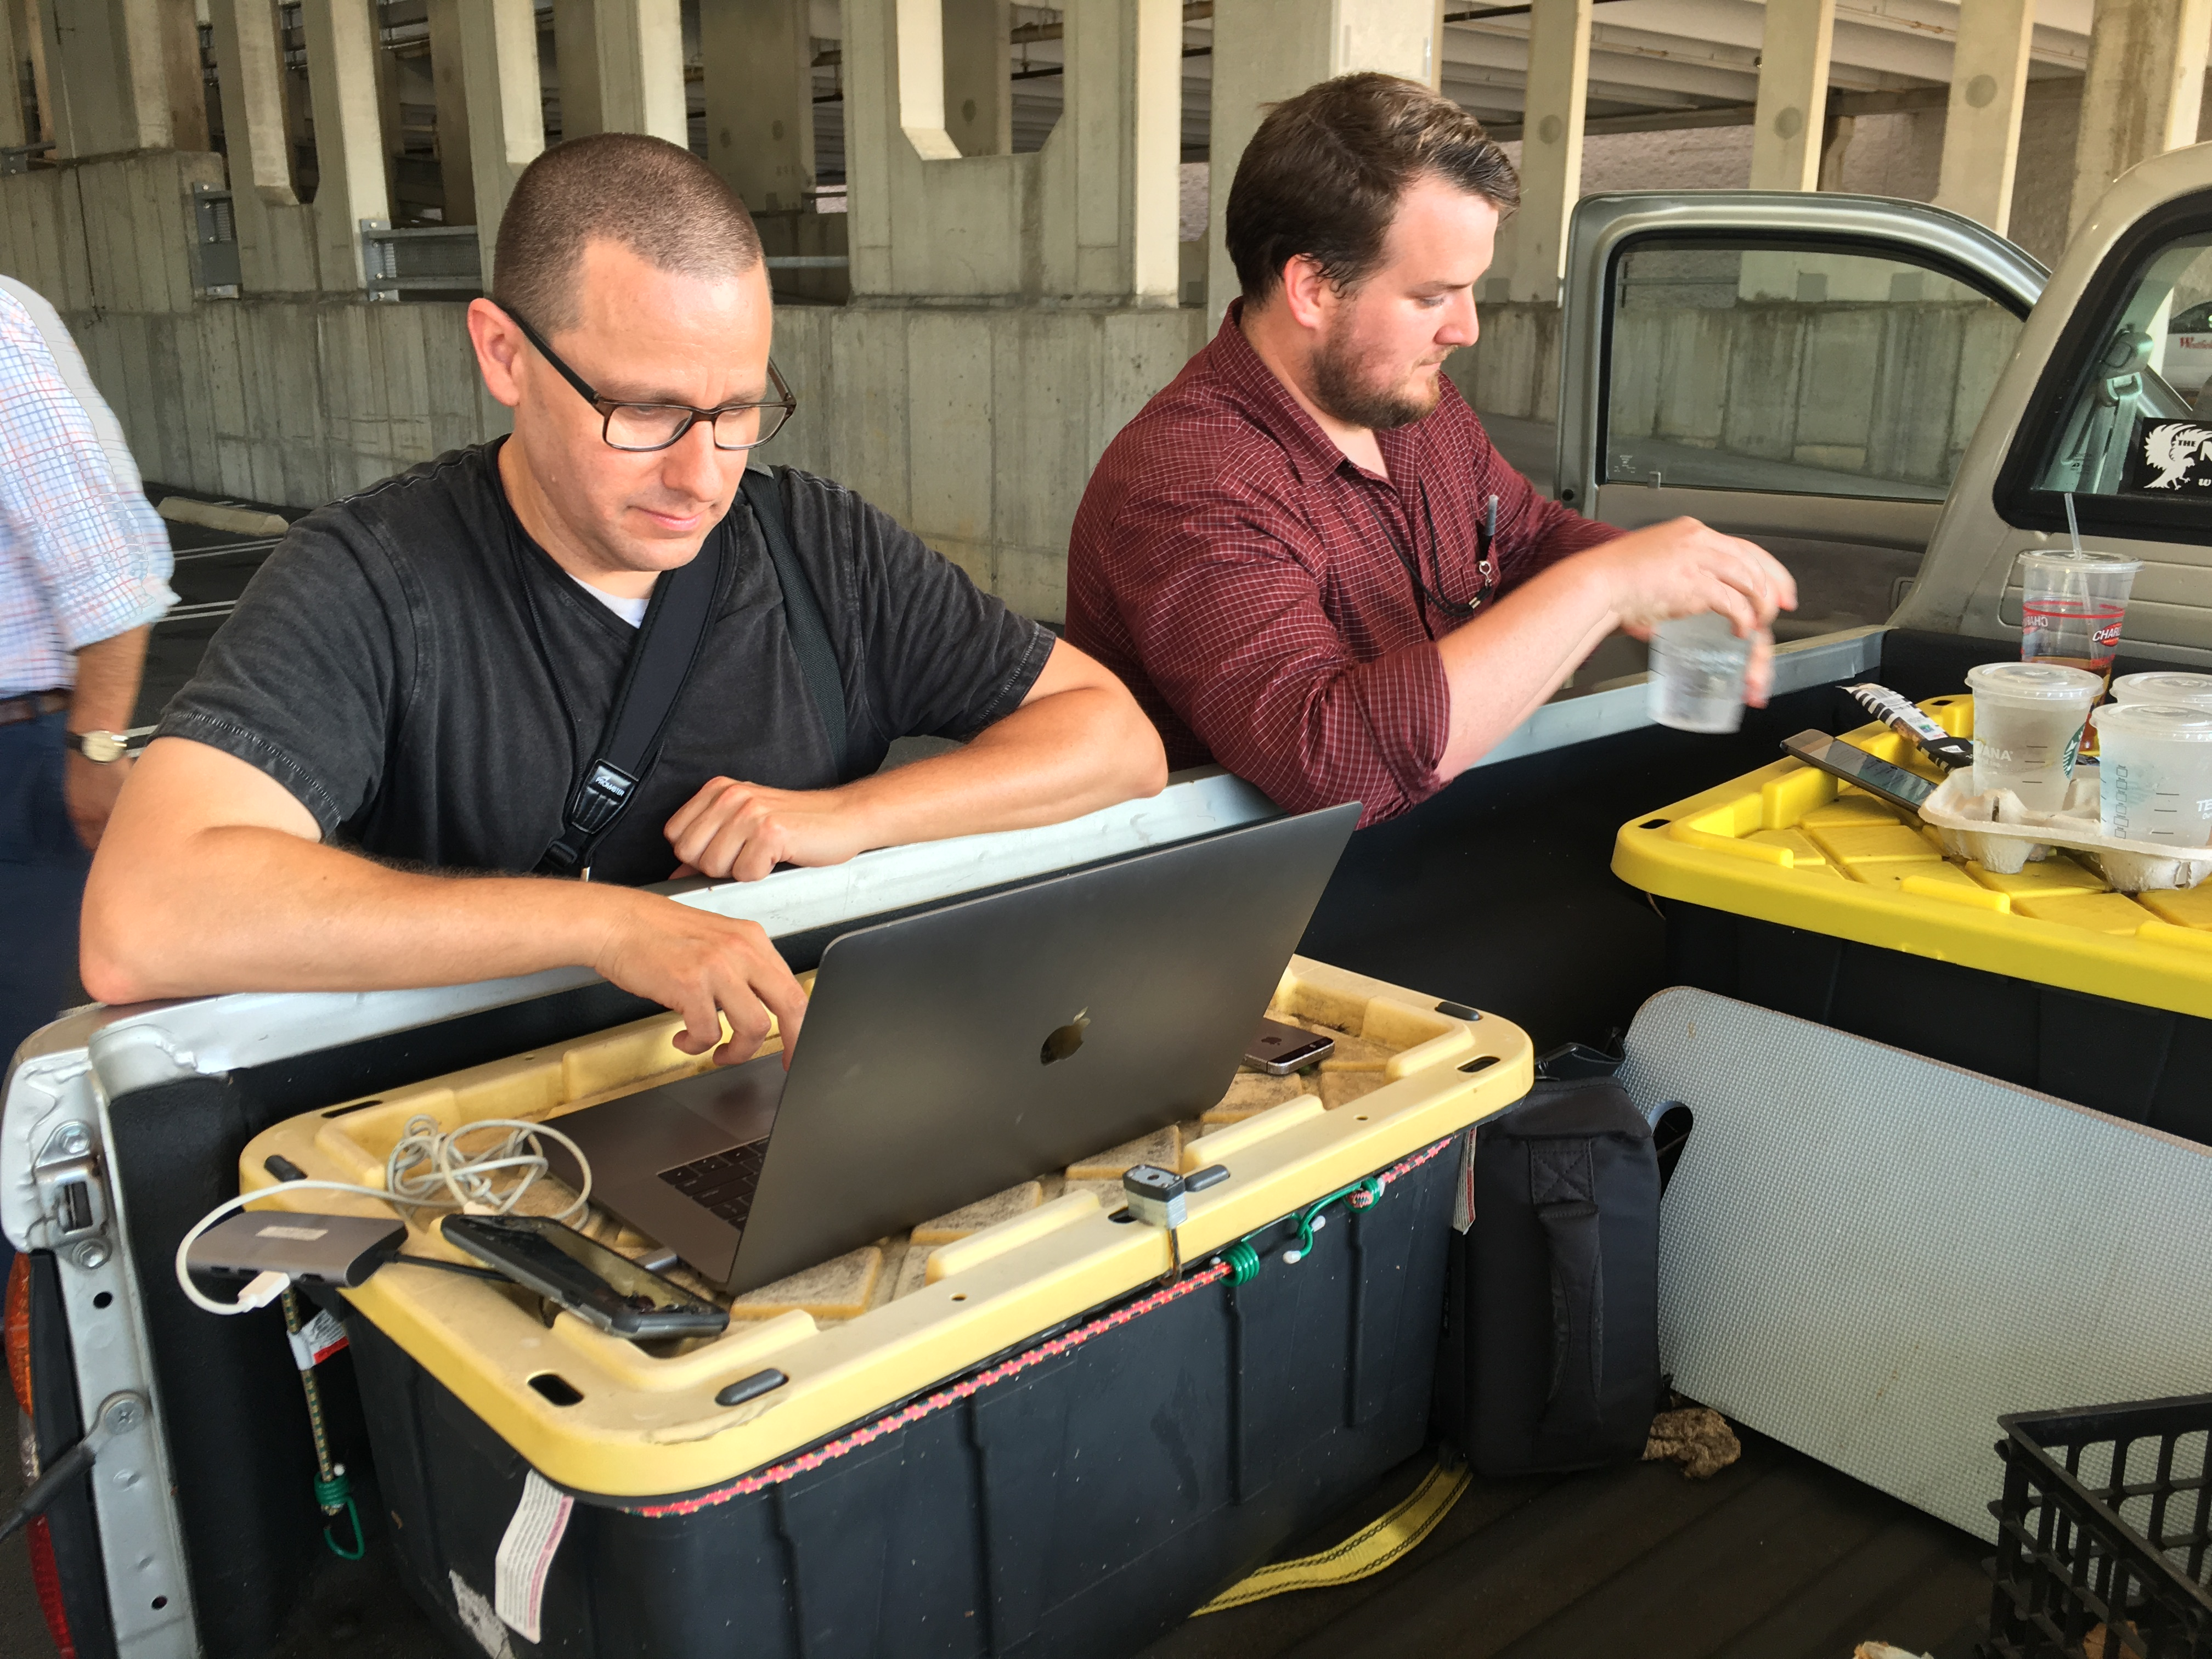 Capital Gazette reporter Chase Cook (R) and photographer Joshua McKerrow (L) work on the next days newspaper while awaiting news from their colleagues in Annapolis, Maryland, June 28, 2018.